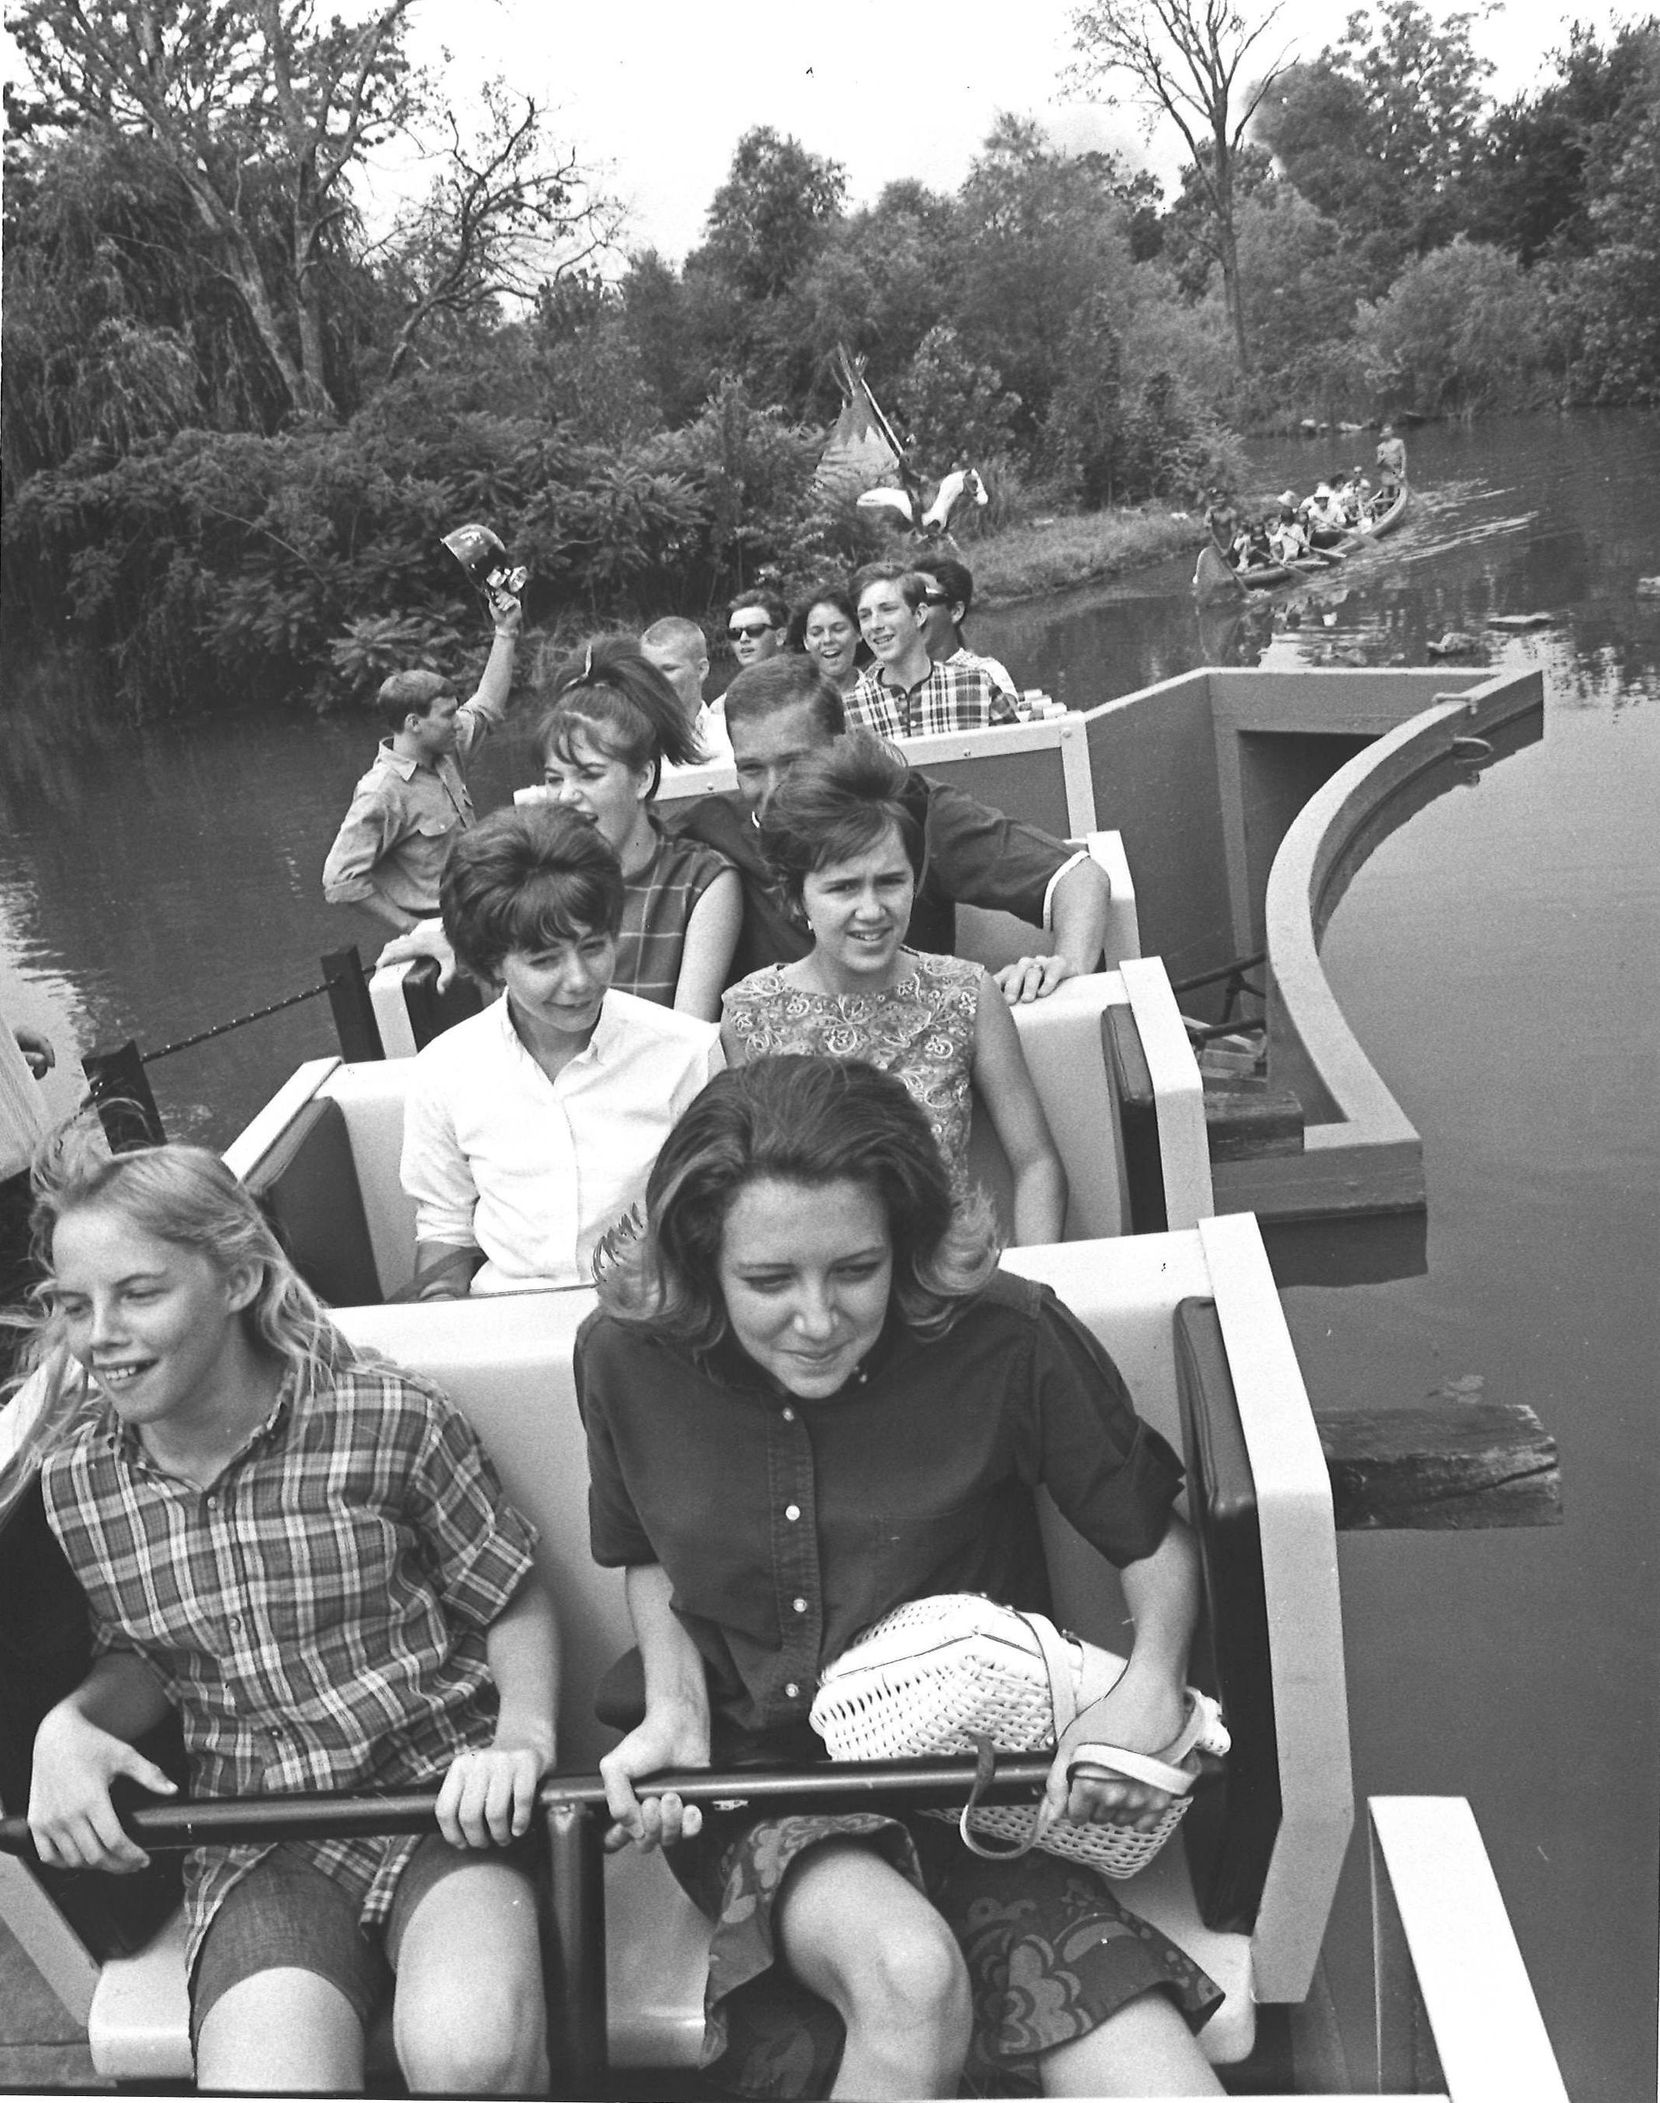 The ambitious Runaway Mine Train ride opened in April 1966 at Six Flags and cost the park a million dollars to construct. Shortly after opening, the ride stalled and passengers were forced to walk off the runaway ride.